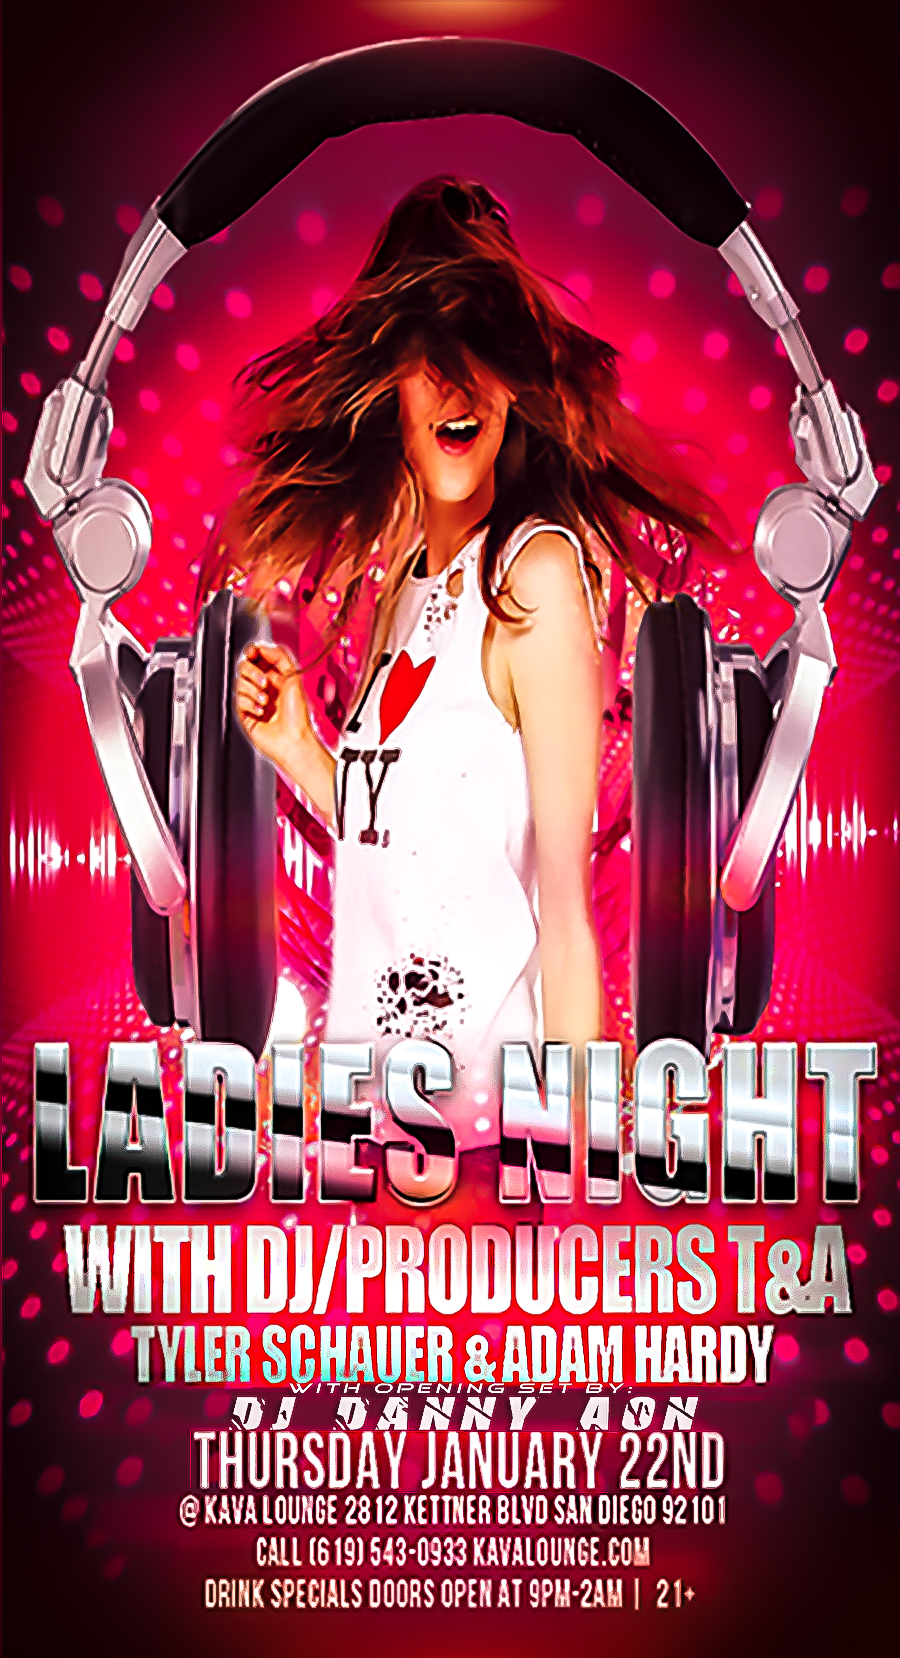 Ladies Night Flyer.jpg